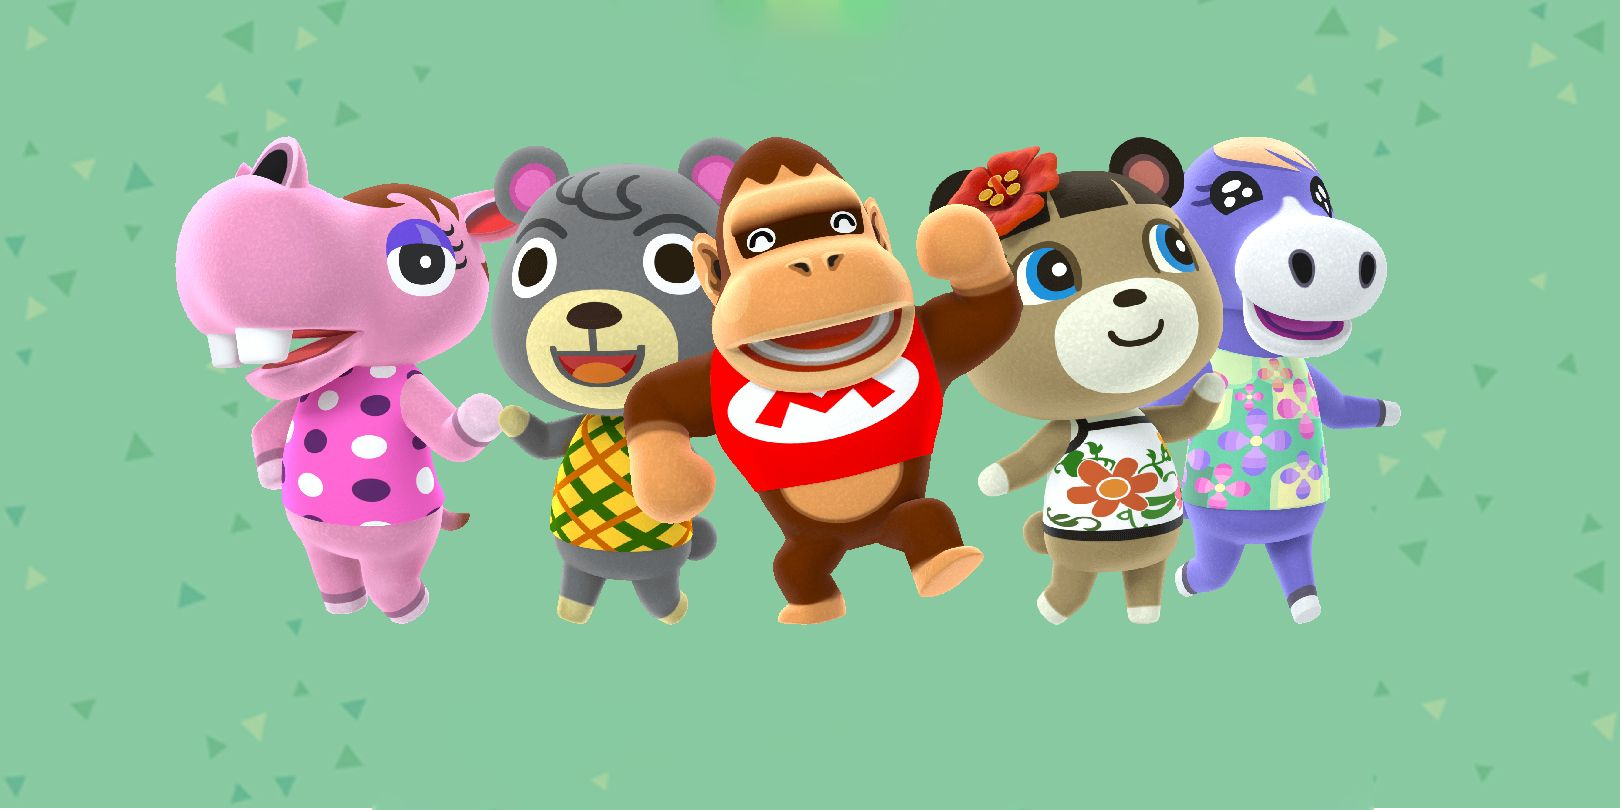 19+ Animal crossing villager pictures images